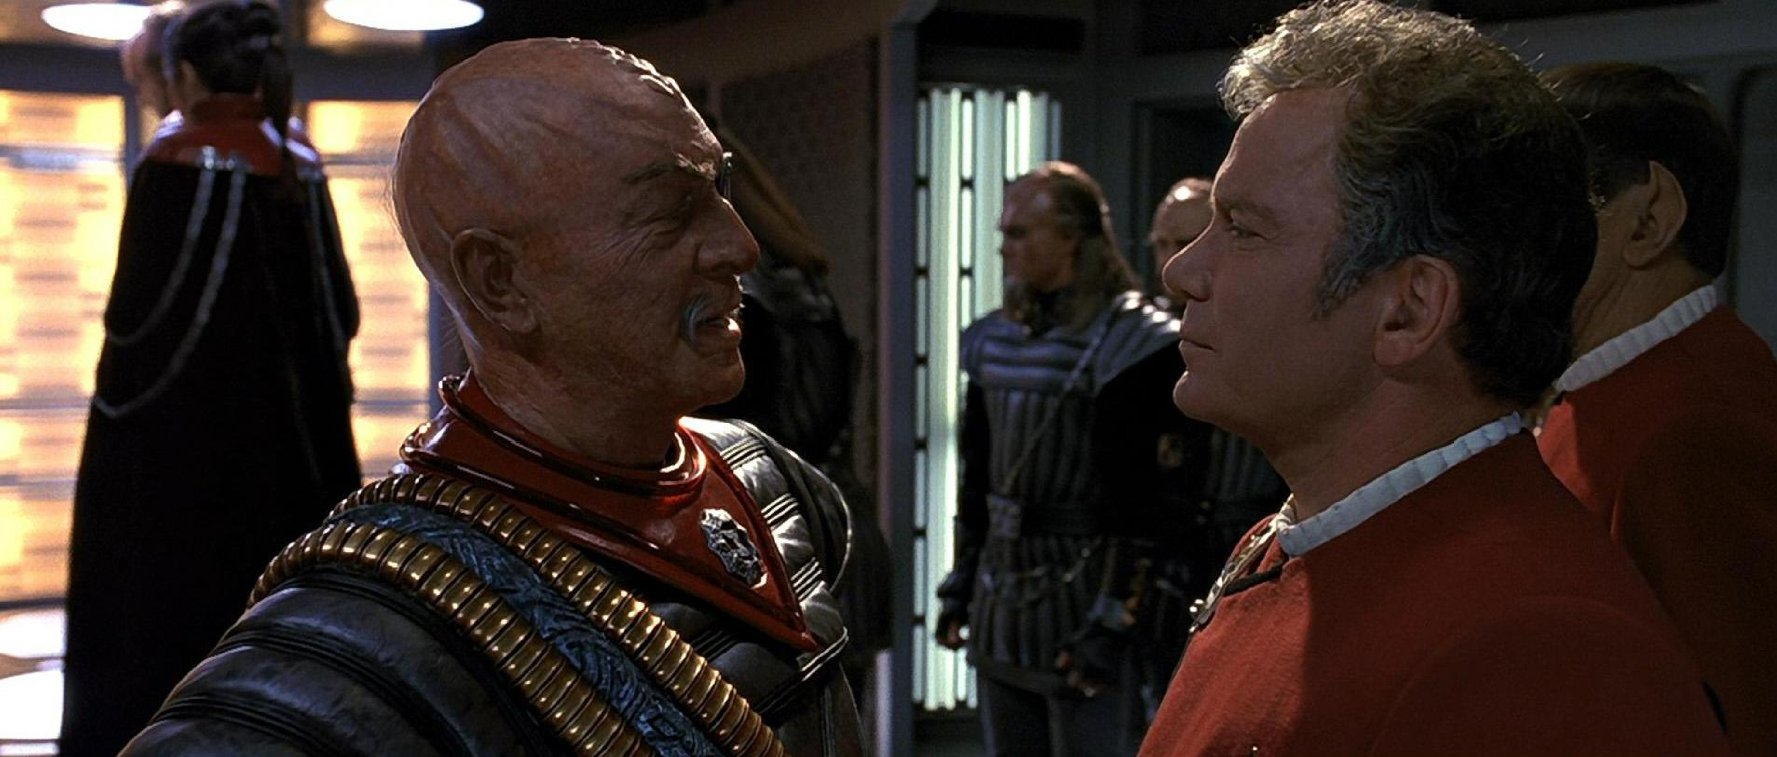 Star Trek VI The Undiscovered Country 1991 BRRip 720p-2